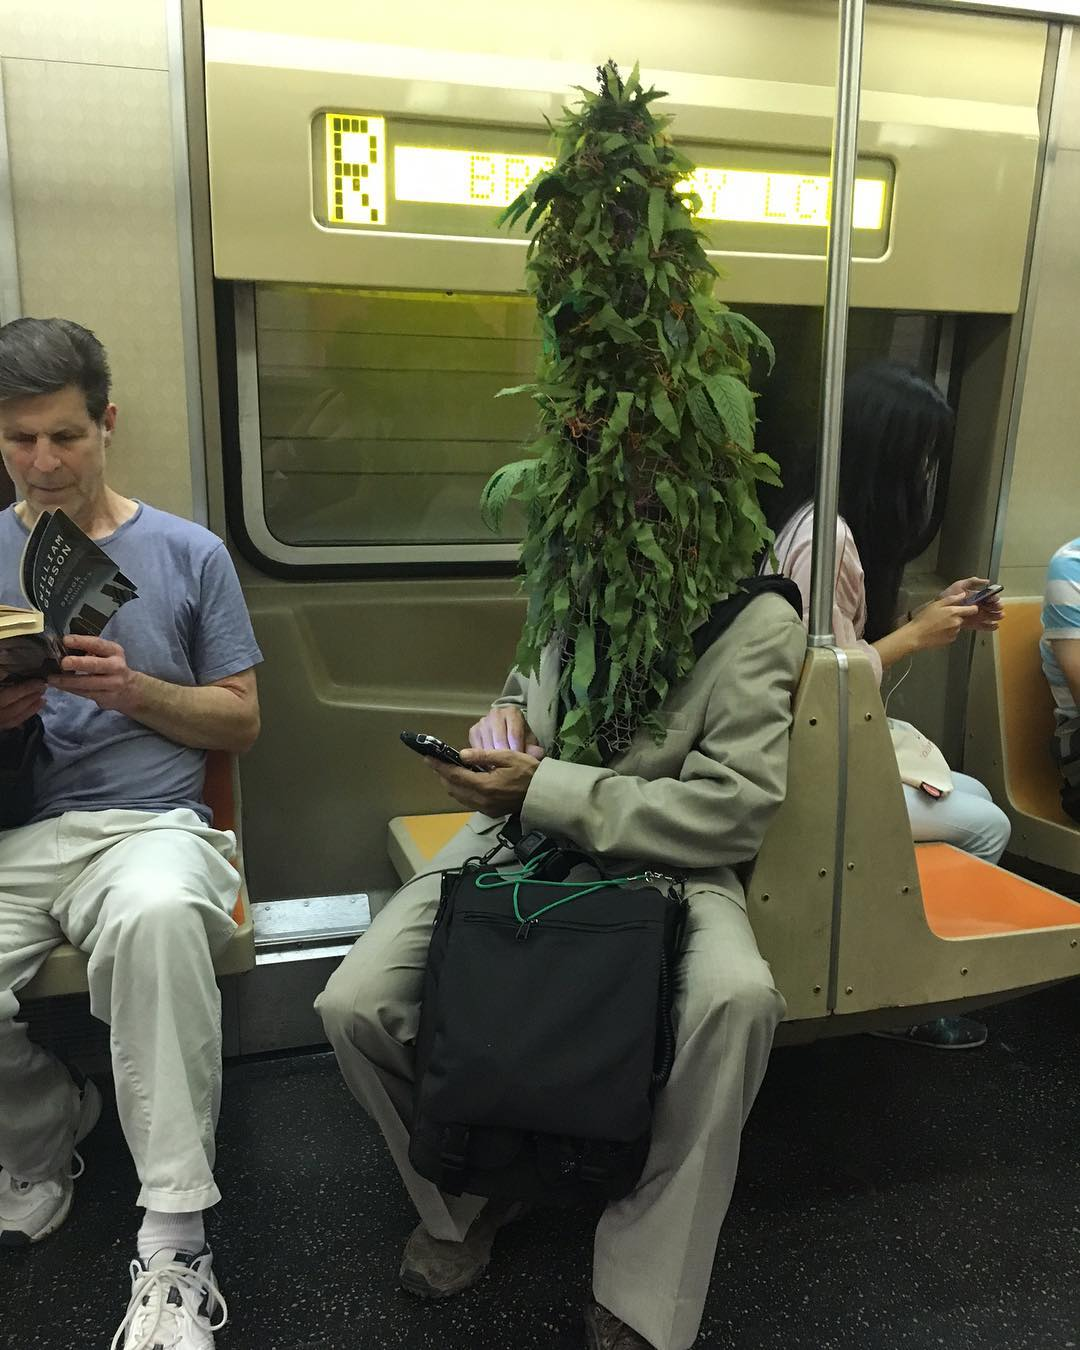 20 - 28 bizarre things seen on the subway